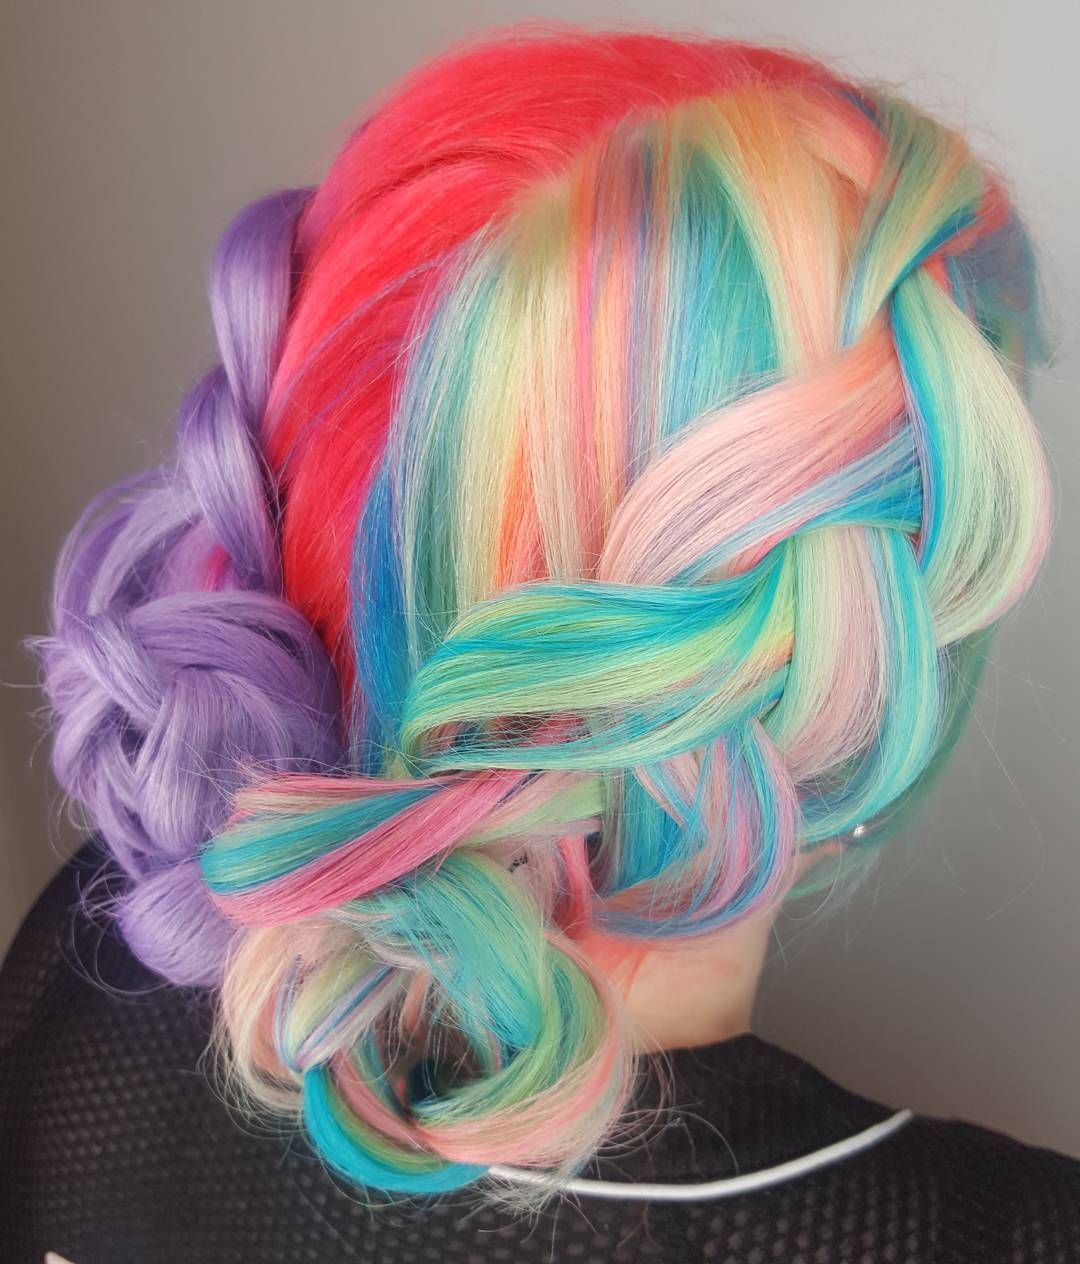 likes comments winnipeg canada hairbymisskellyo on